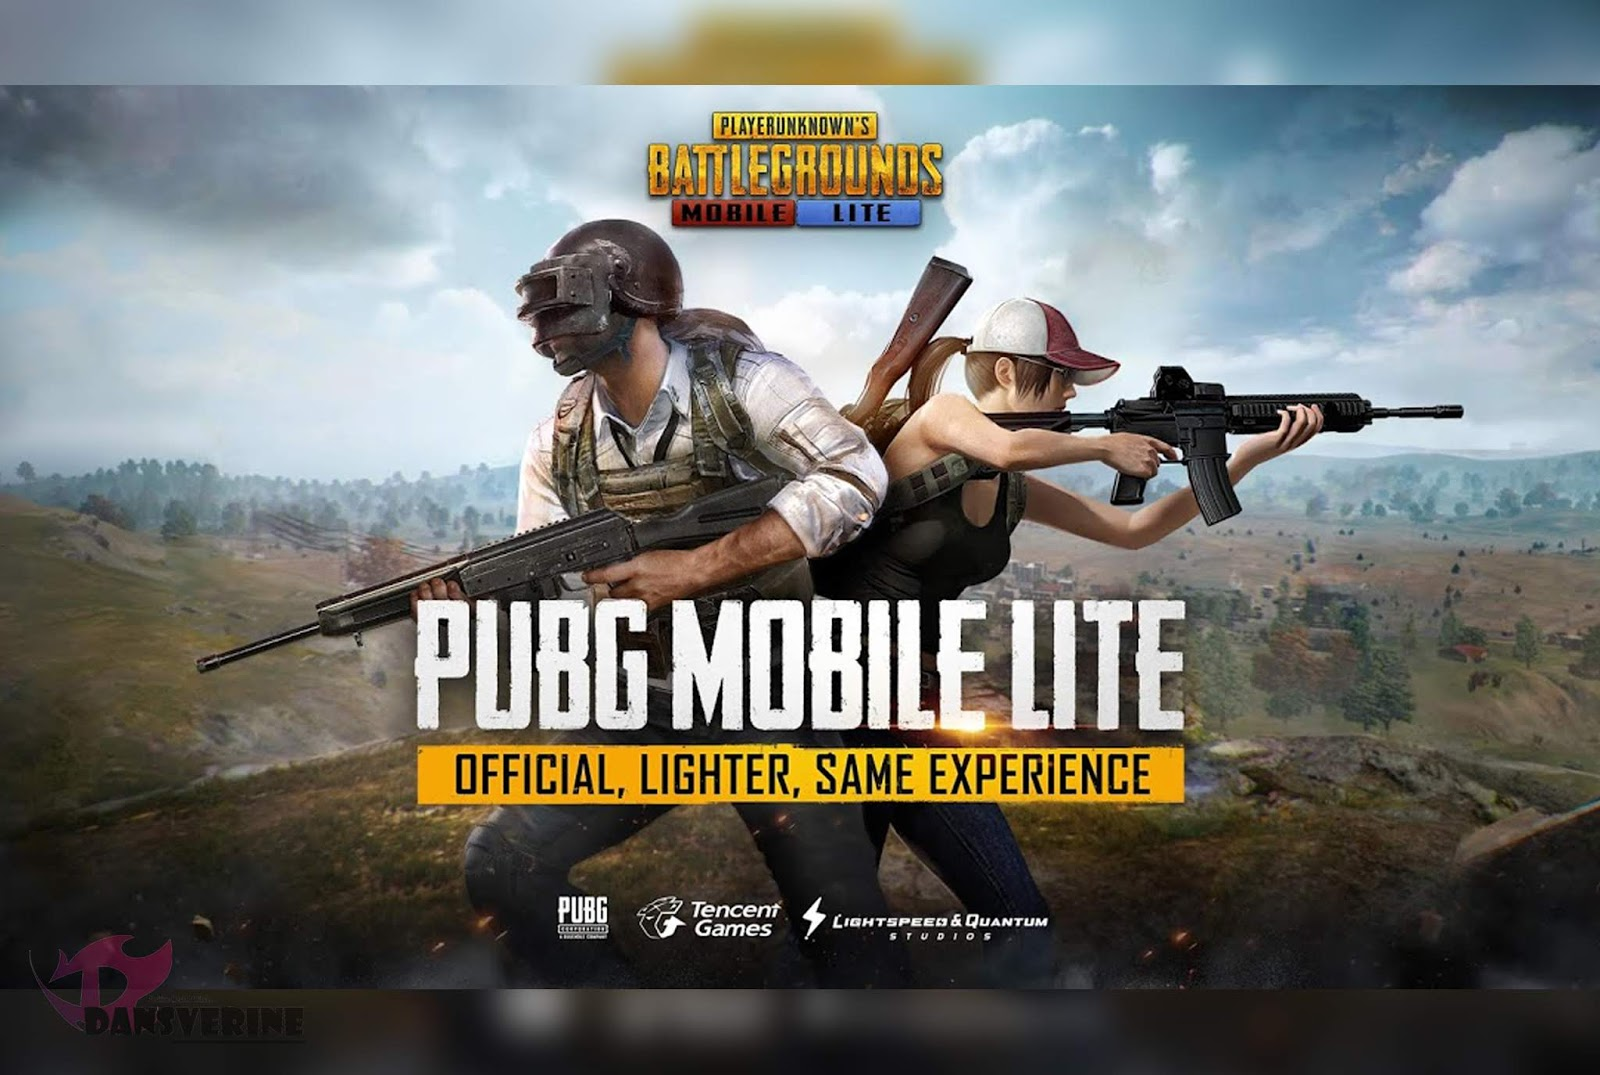 Pubg Mobile Lite Launched For Android Smartphones In: Download PUBG MOBILE LITE 0.5.0 For Android